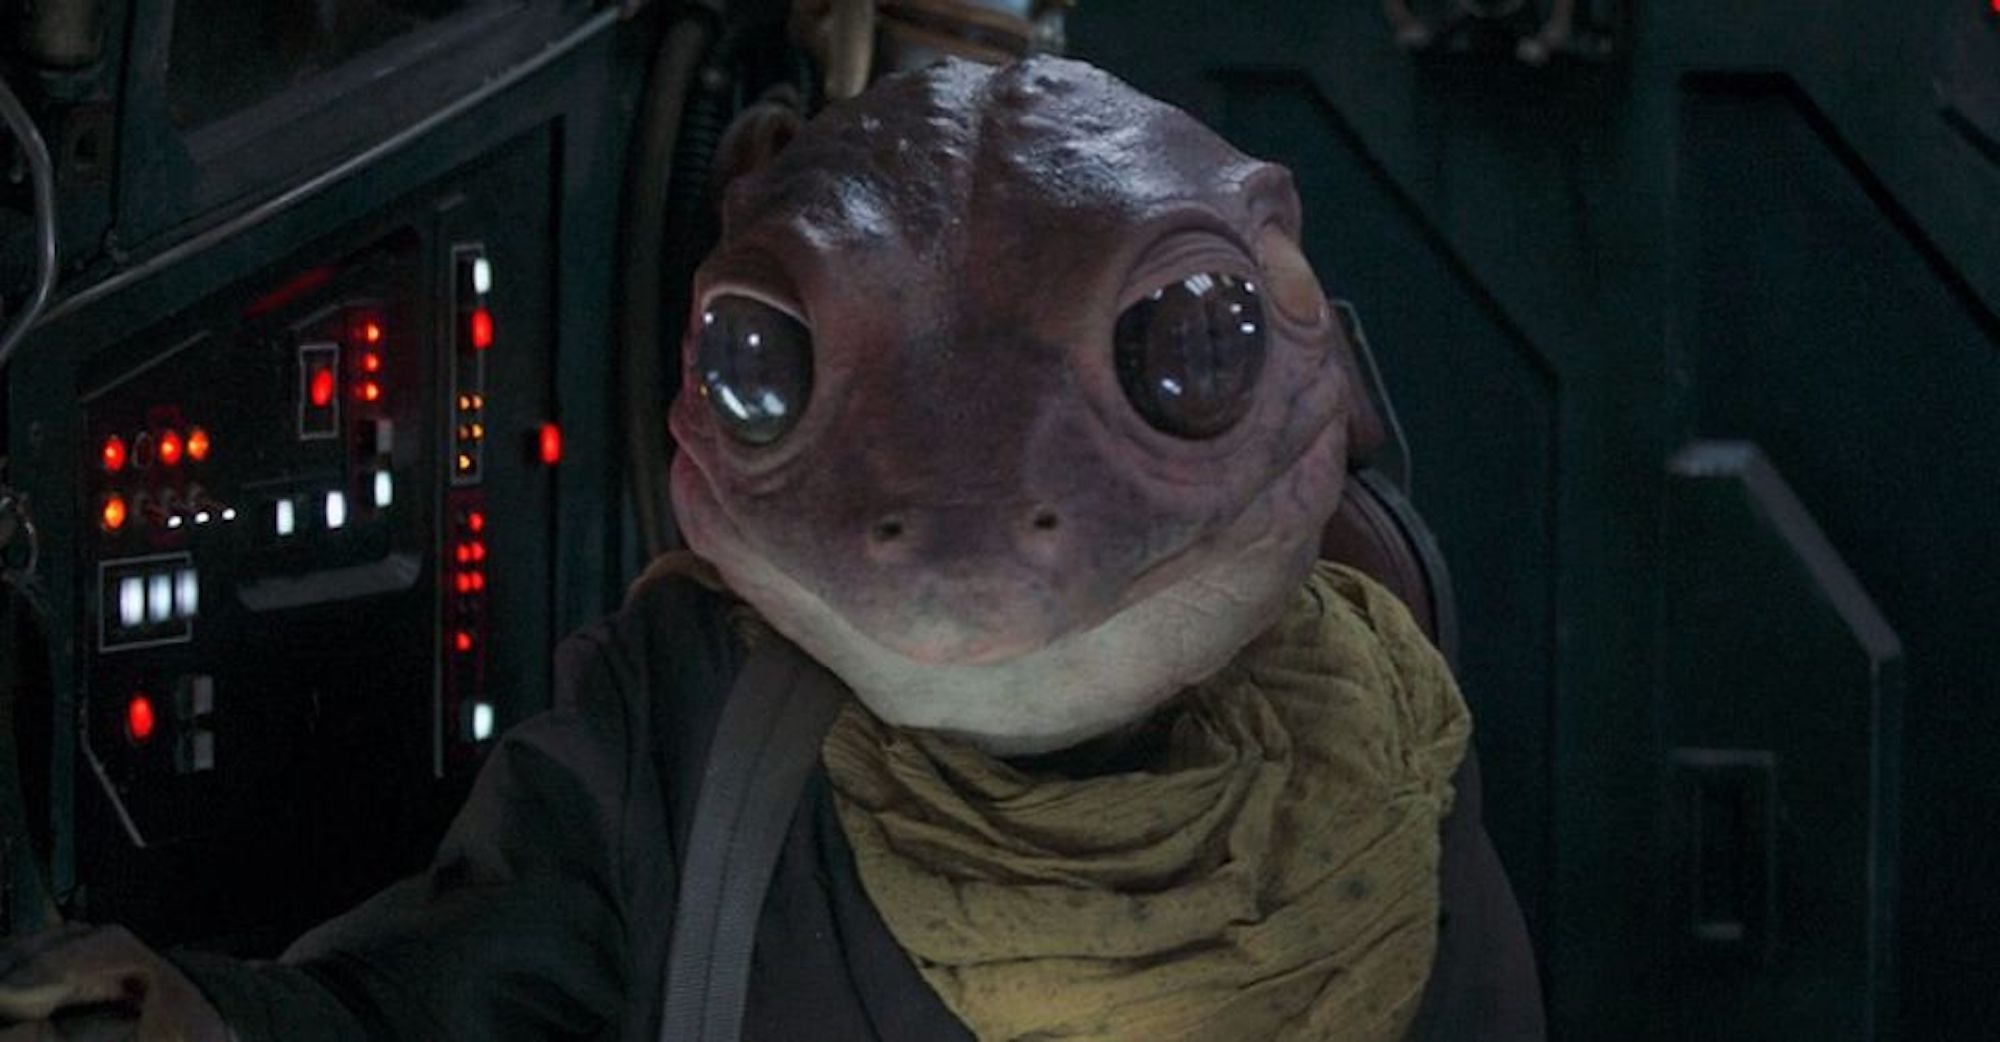 Frog Lady from Season 2 of 'The Mandalorian'